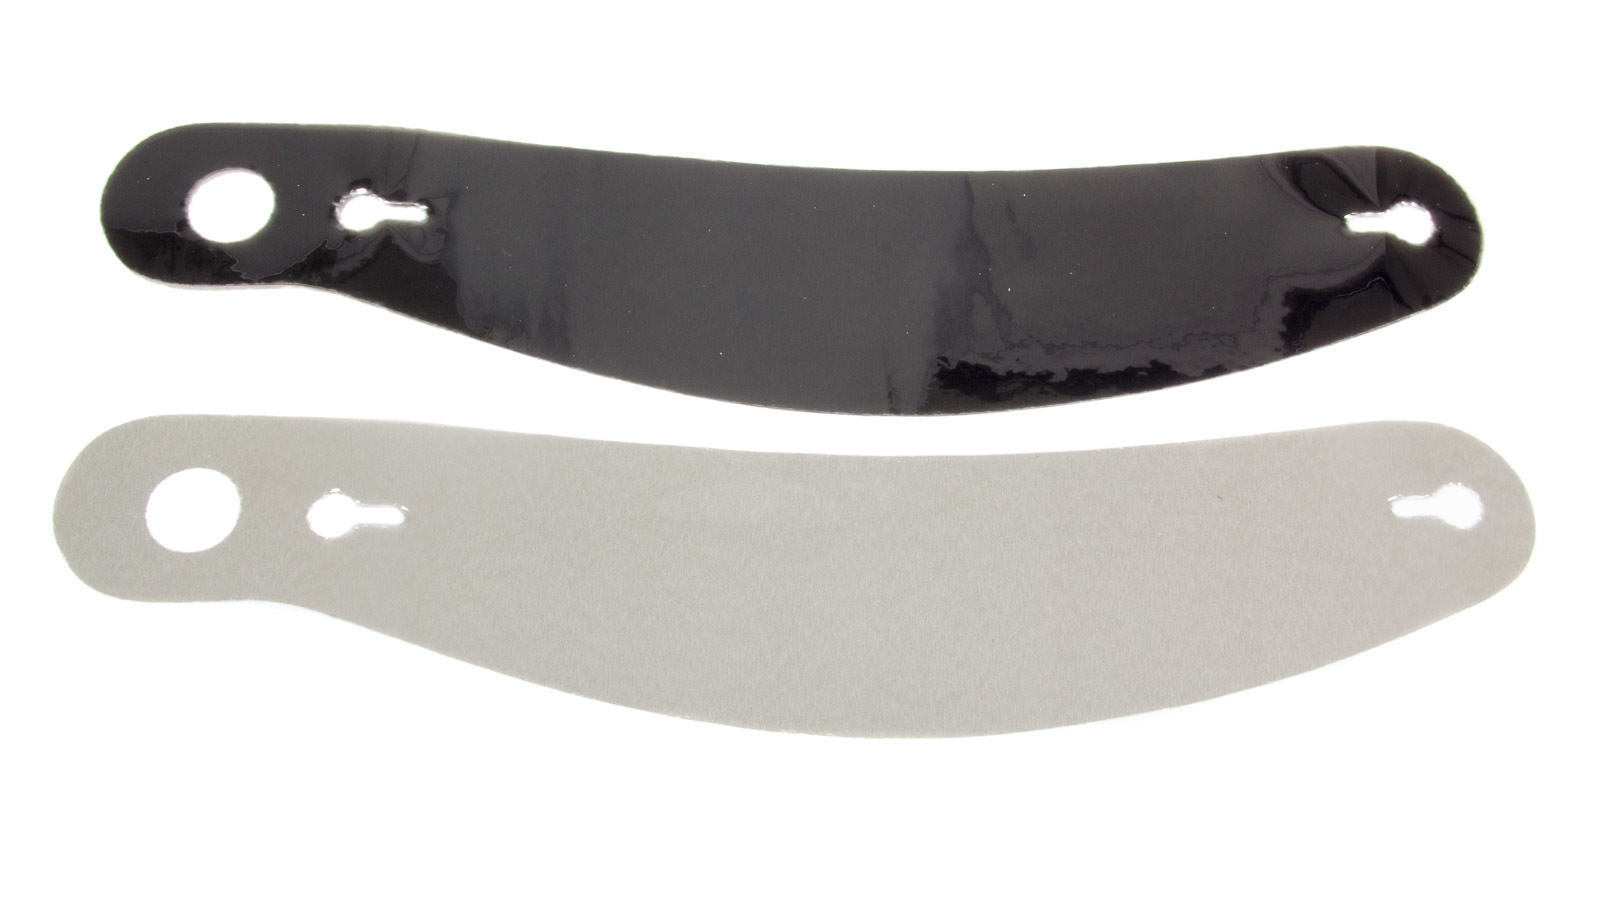 Ultra Shield S24 Helmet Shield Tear Off, 2 mm Thick, 12-1/4 in Center to Center, Curved, Plastic, Smoked, Bell 276, Set of 5